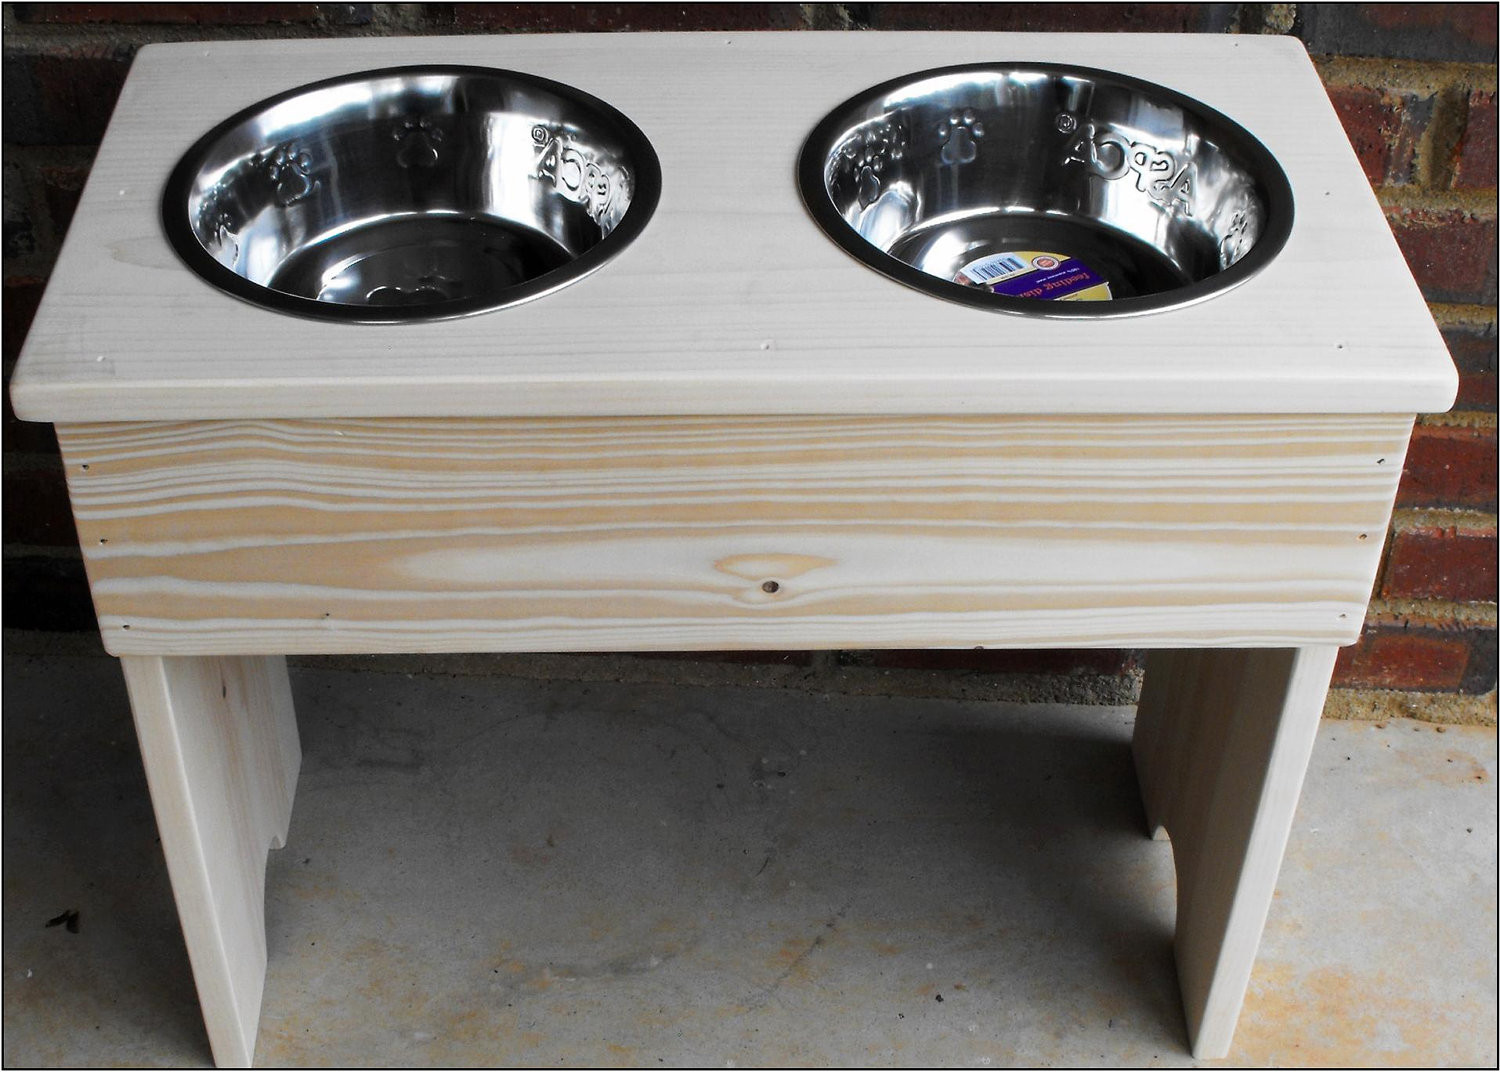 Best ideas about Raised Dog Bowls DIY . Save or Pin Items similar to Raised Dog Bowl Stand Naked DIY Finish Now.